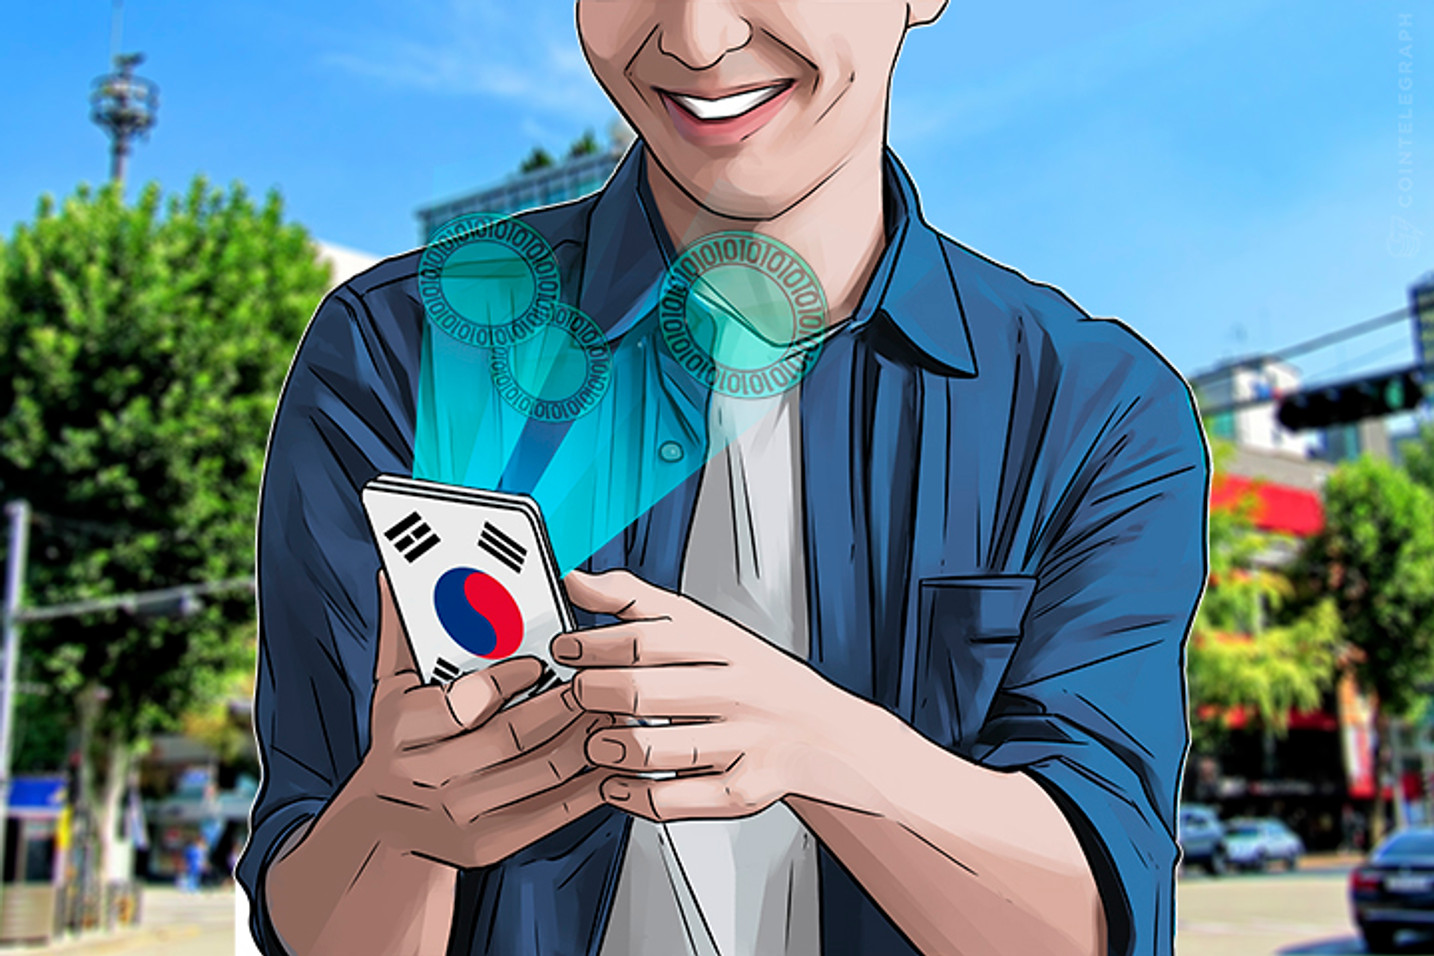 111 Altcoins To Be Traded in Korea's New Exchange As SK Passes China in Bitcoin Trading